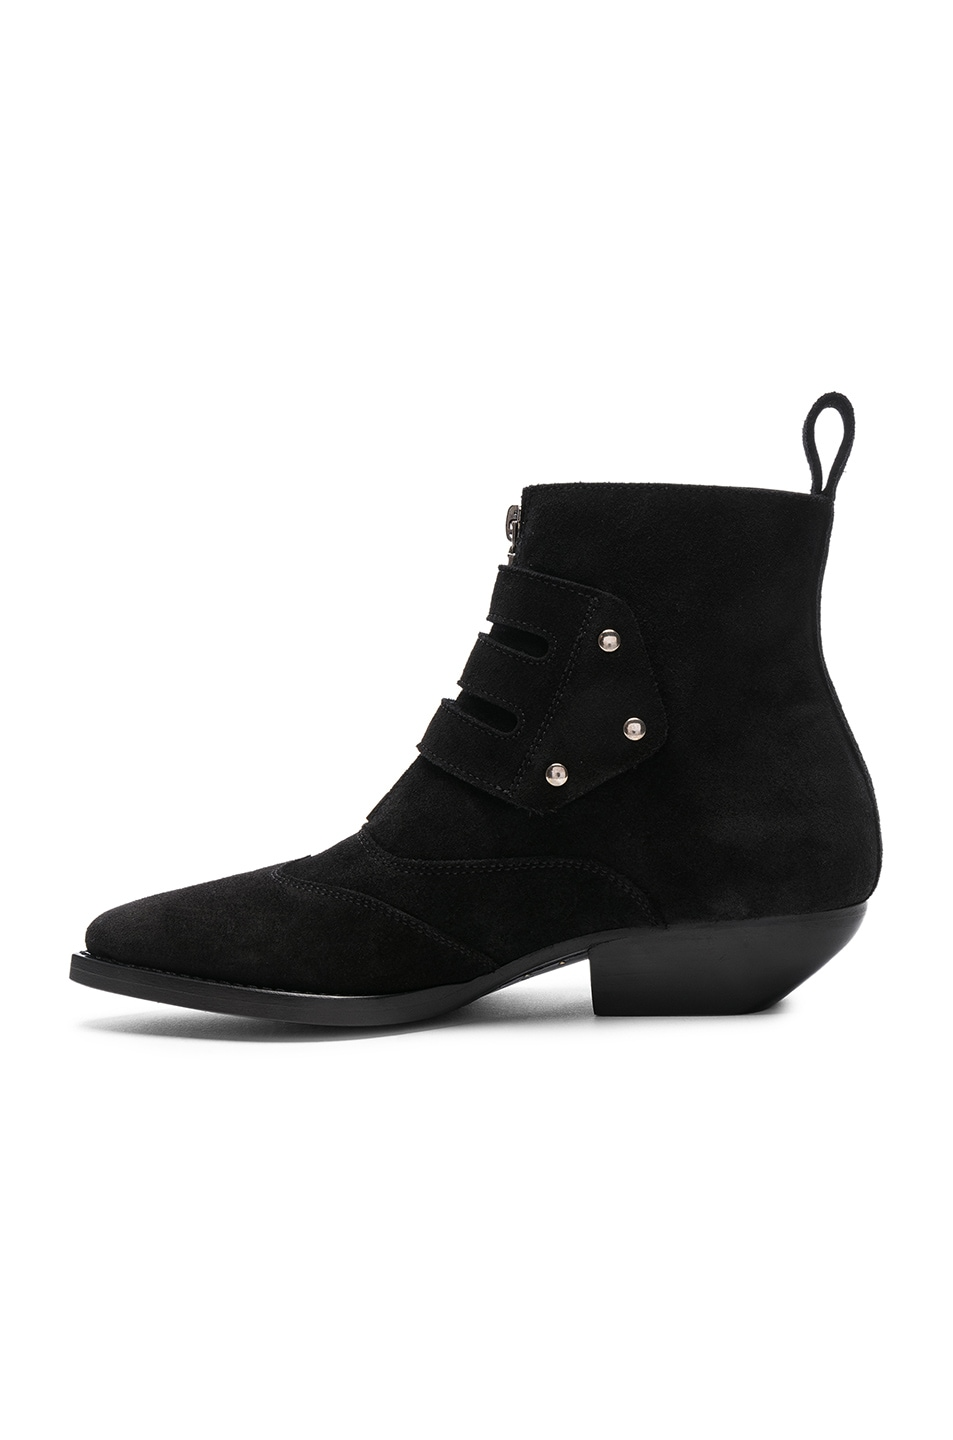 Image 5 of Saint Laurent Suede Theo Buckled Ankle Boots in Black